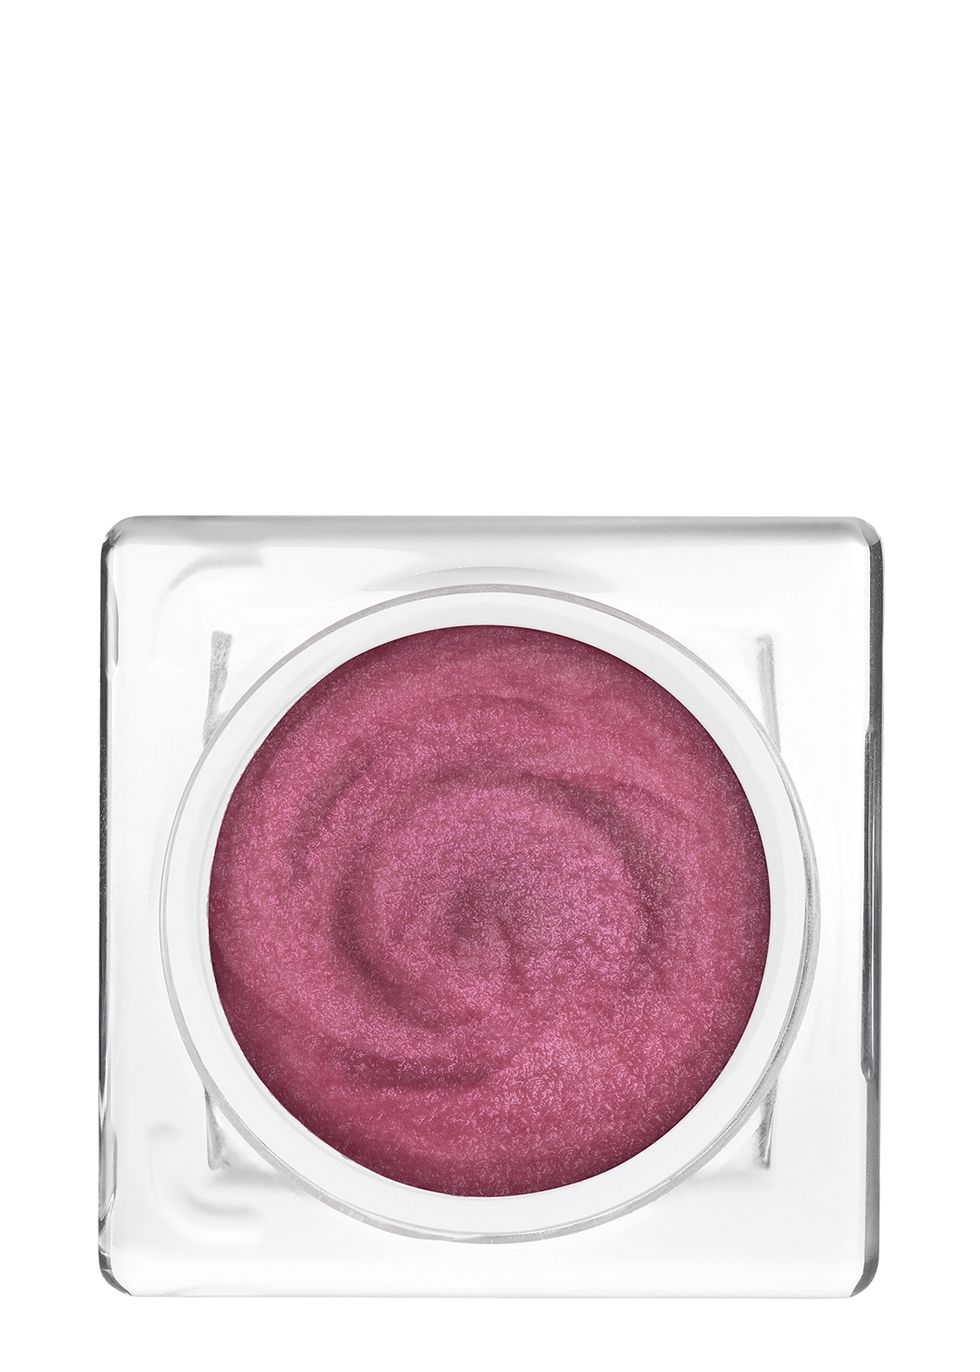 Minimalist Whipped Powder Blush - SHISEIDO